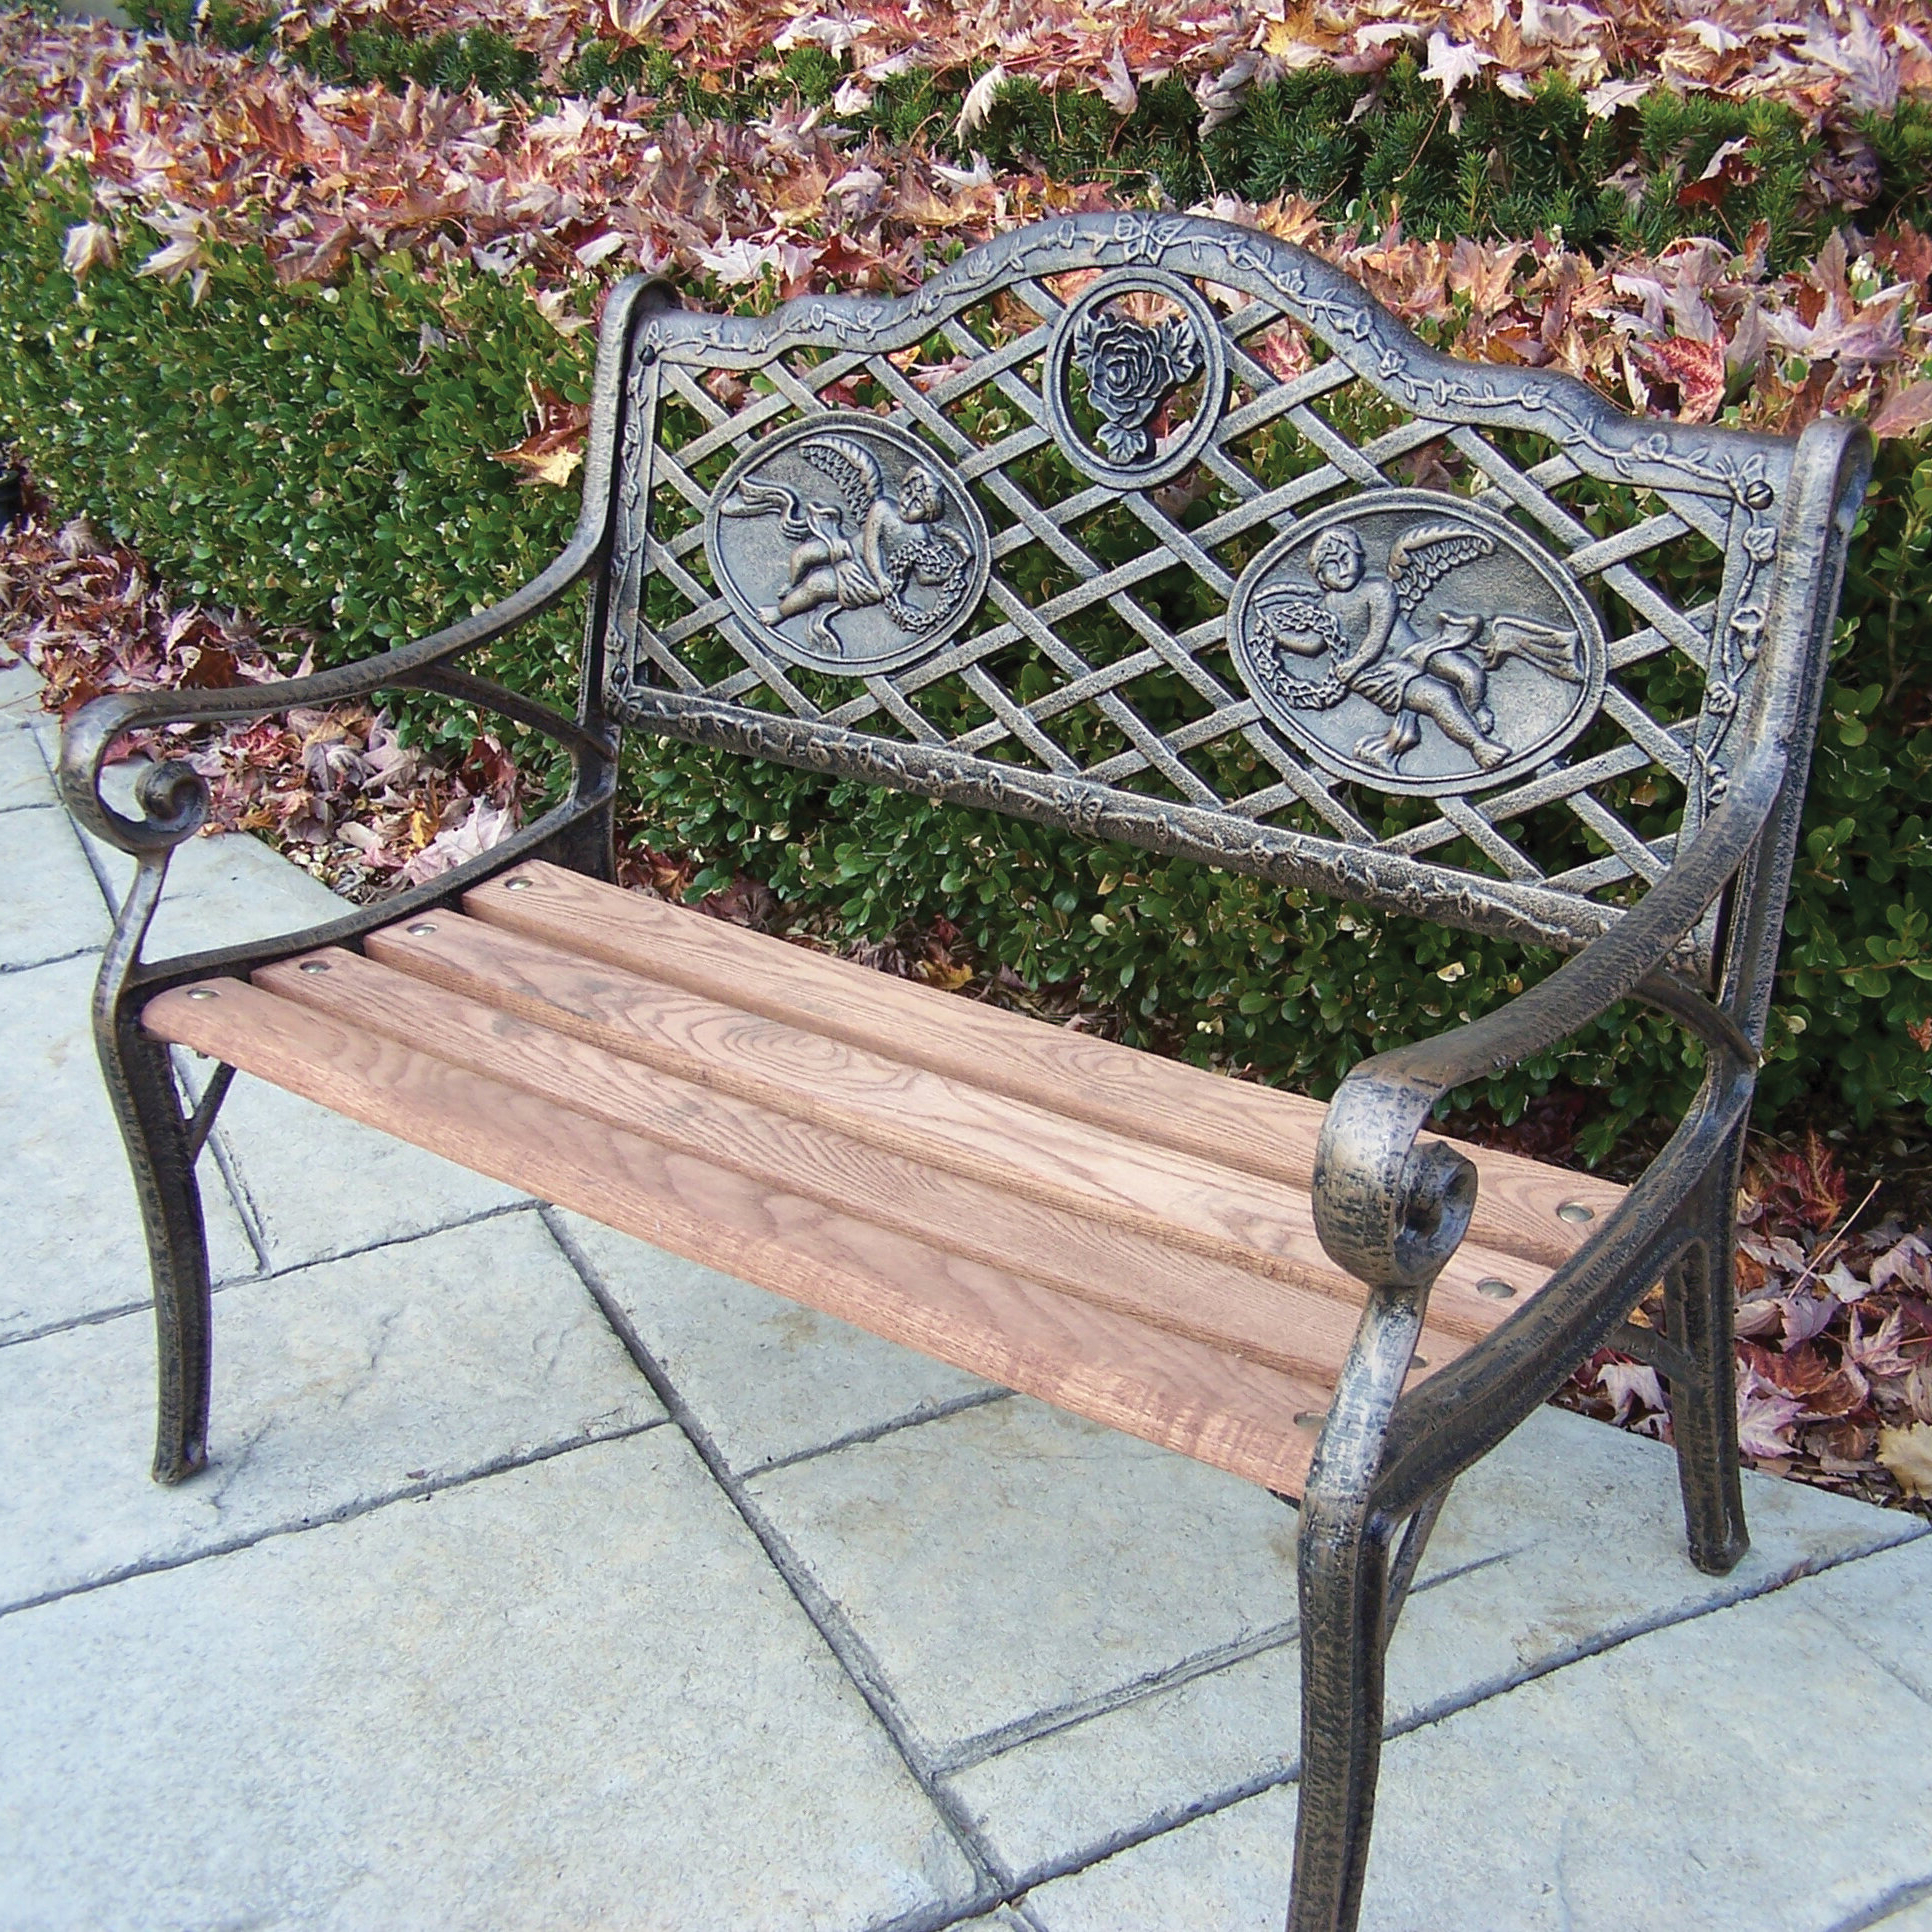 Angel Kiddy Wood And Cast Iron Park Bench For 2020 Ossu Iron Picnic Benches (View 15 of 30)